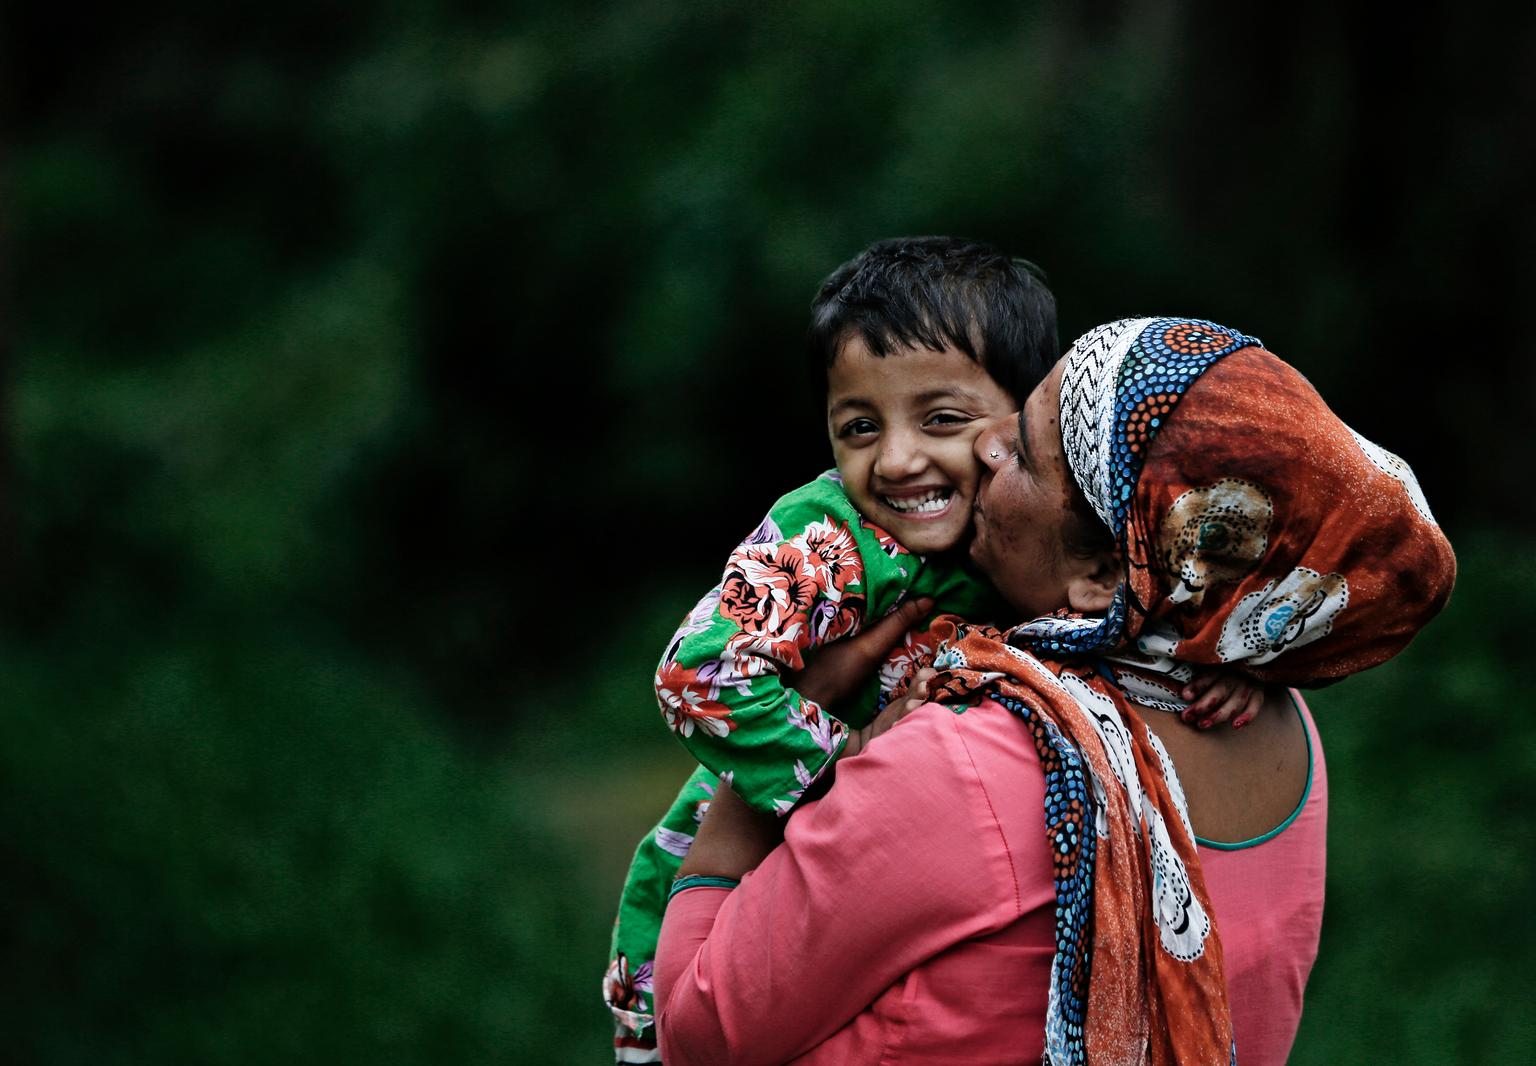 A woman kisses the child she has held in her arms.